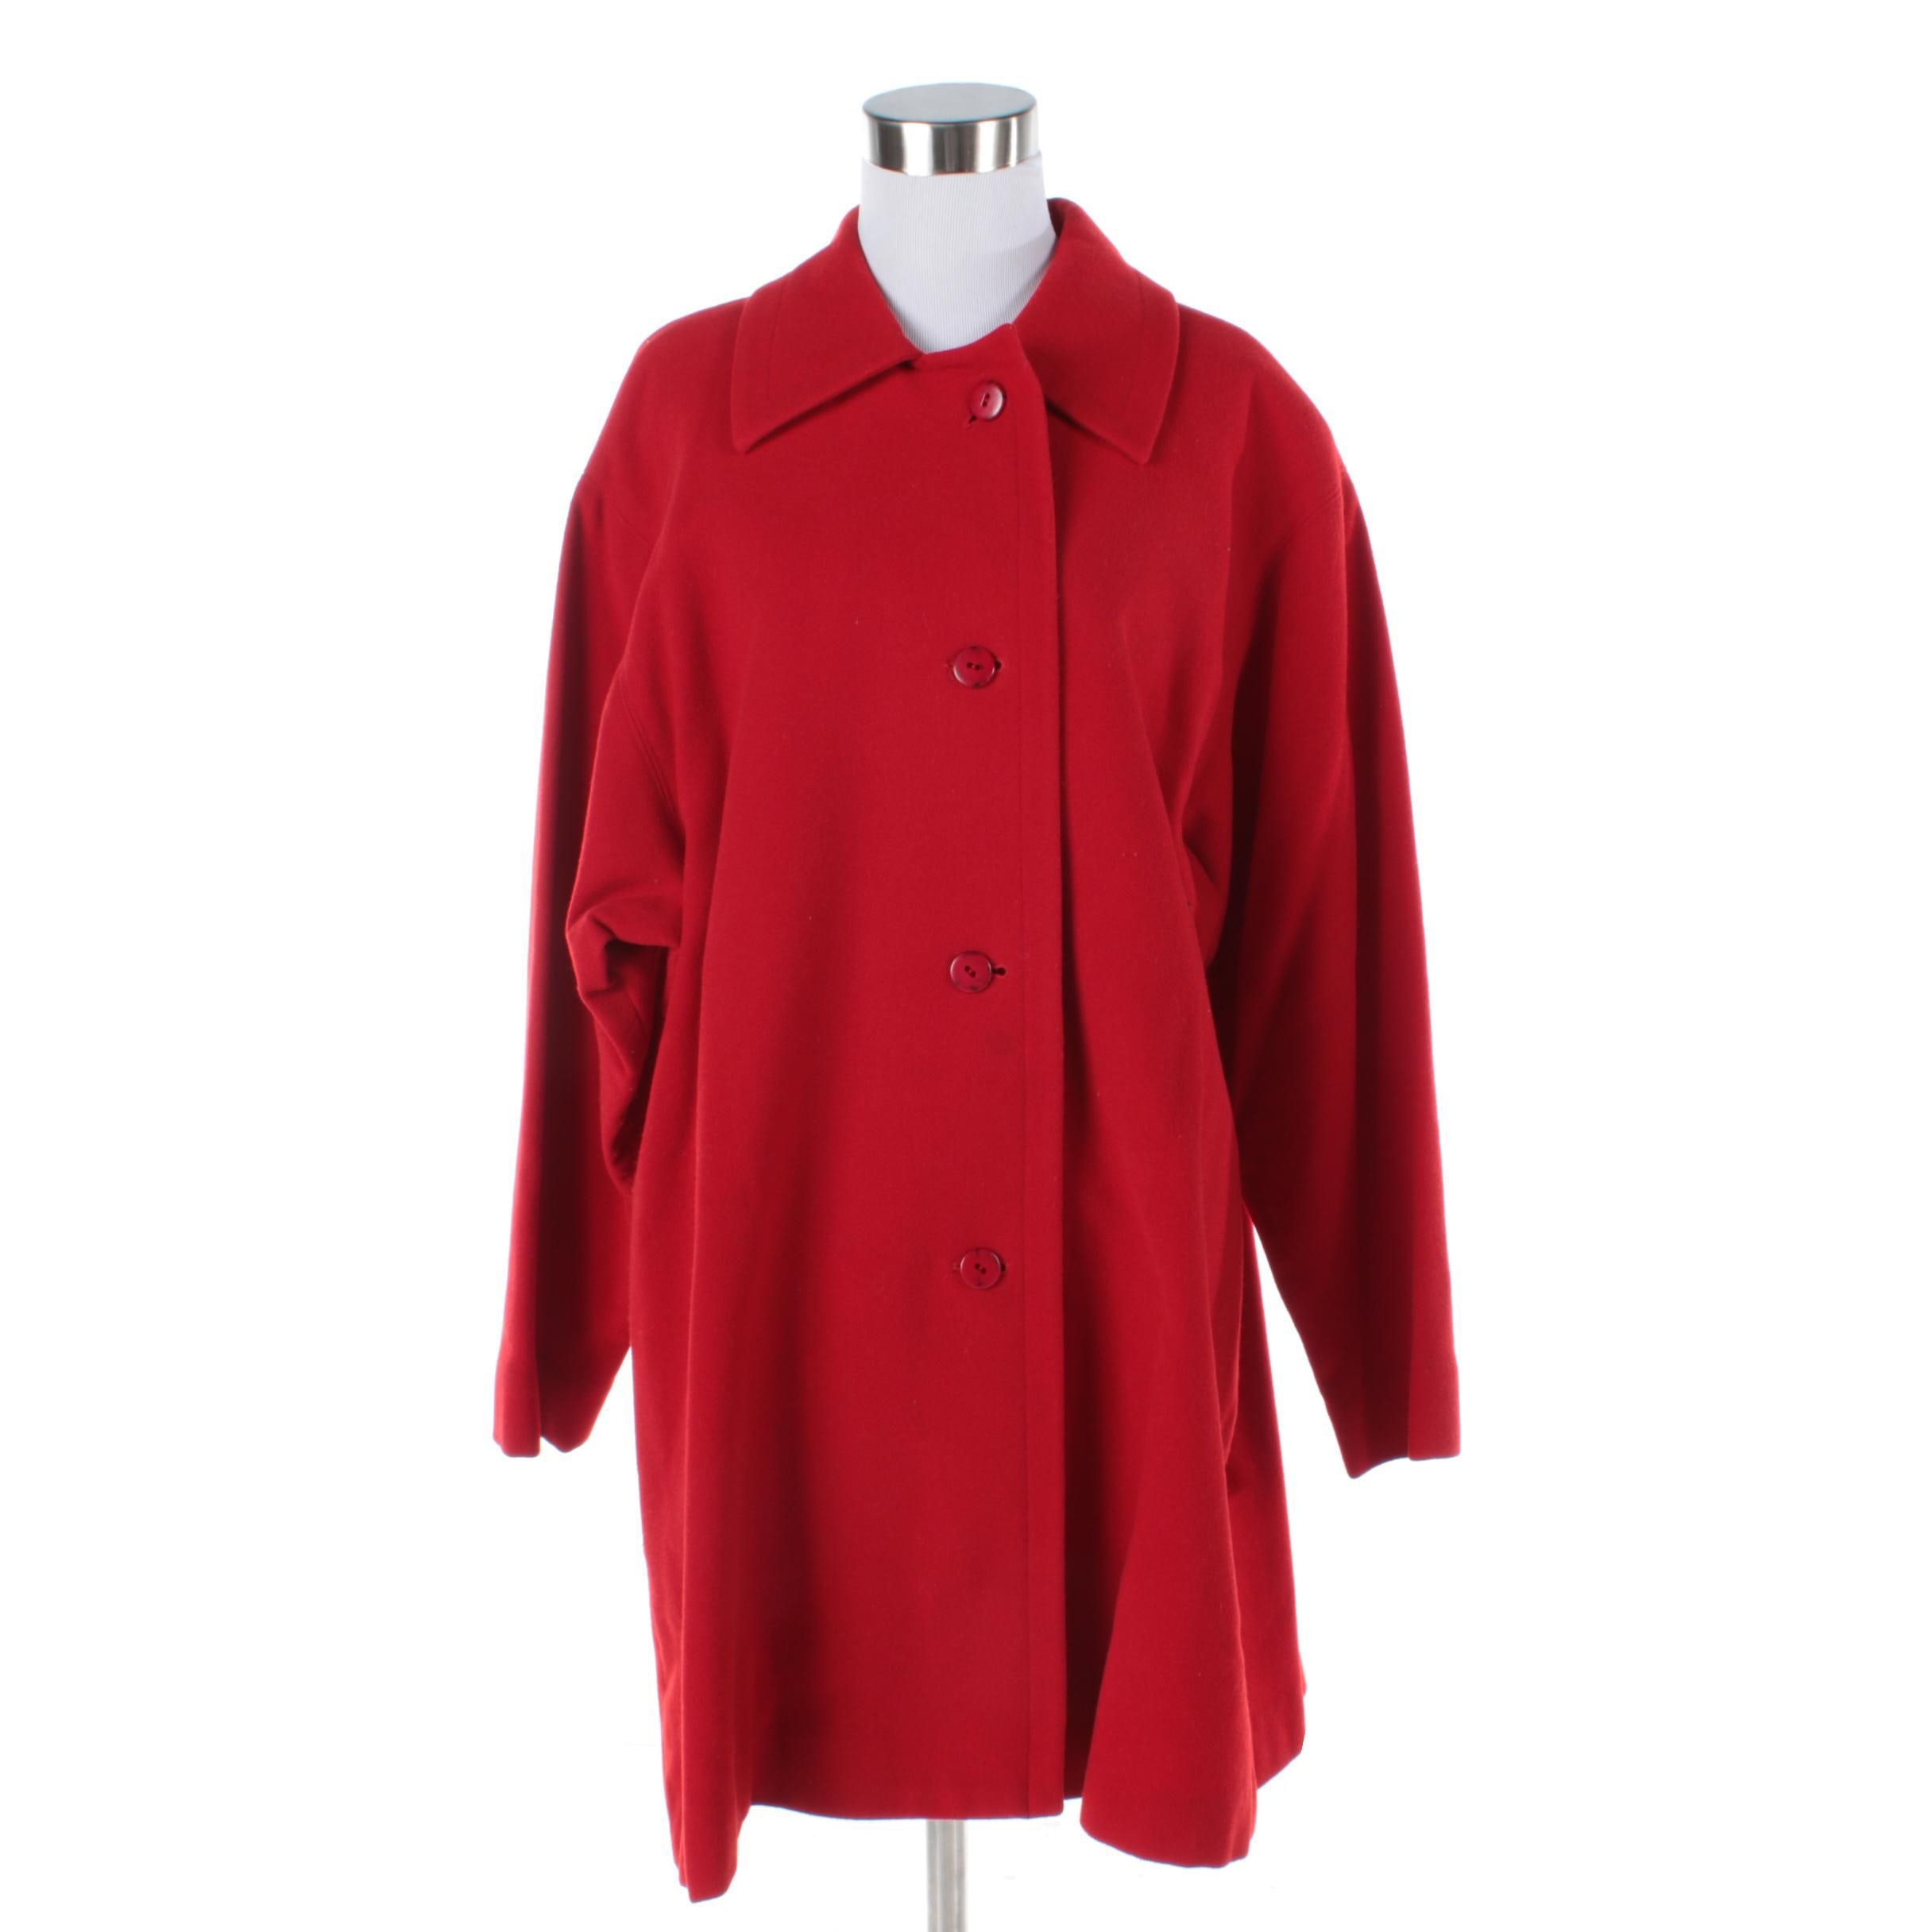 Linda Allard for Ellen Tracy Red Wool Blend Jacket